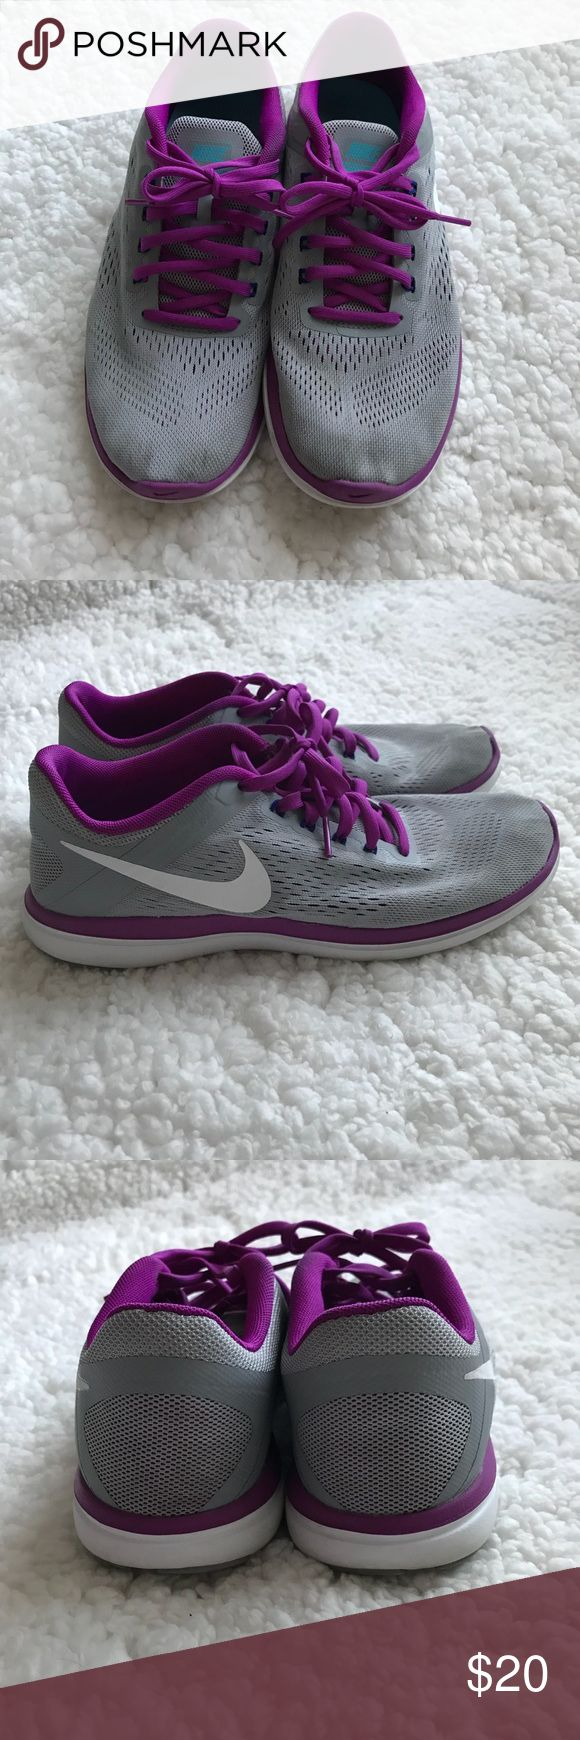 Nike Flex 2016 Run 🏃♀️ Pair of Nike 2016 Run shoes in Excellent Condition!! Some marks on the top but the shape, sole and overall condition is excellent!! Grey with purple Nike Shoes Sneakers